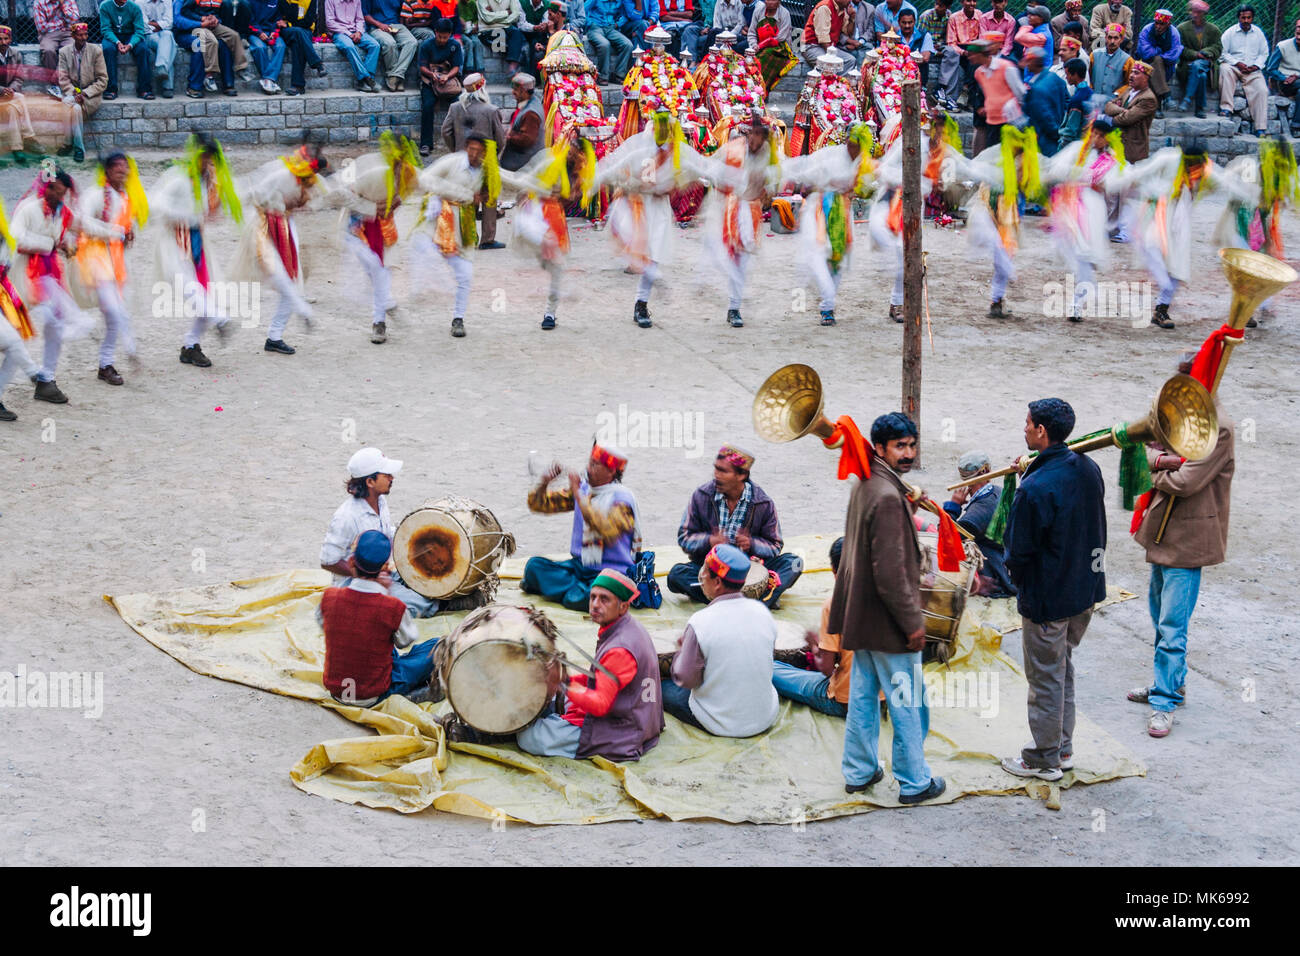 Naggar, Himachal Pradesh, India : During the Naggar Mela festival musicians perform sitting on the floor while high caste rajputs dance in a circle in - Stock Image